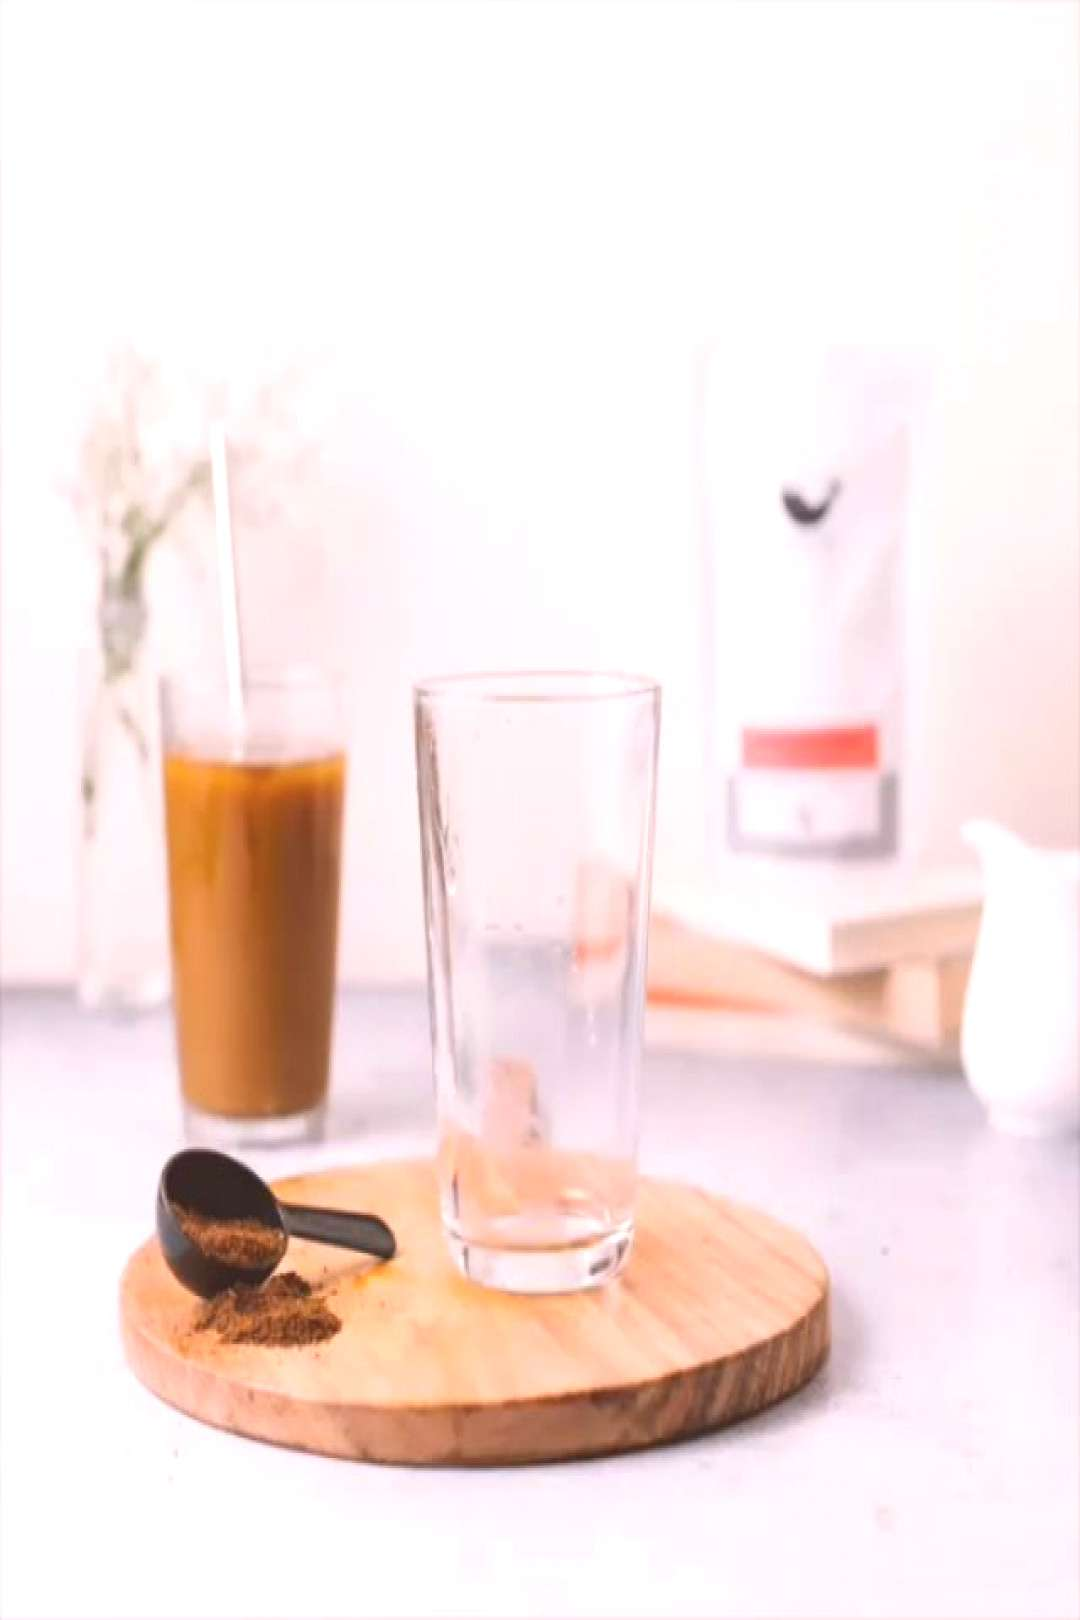 Reposted from It's Iced Coffee kinda day ️️ Shot by .ease For